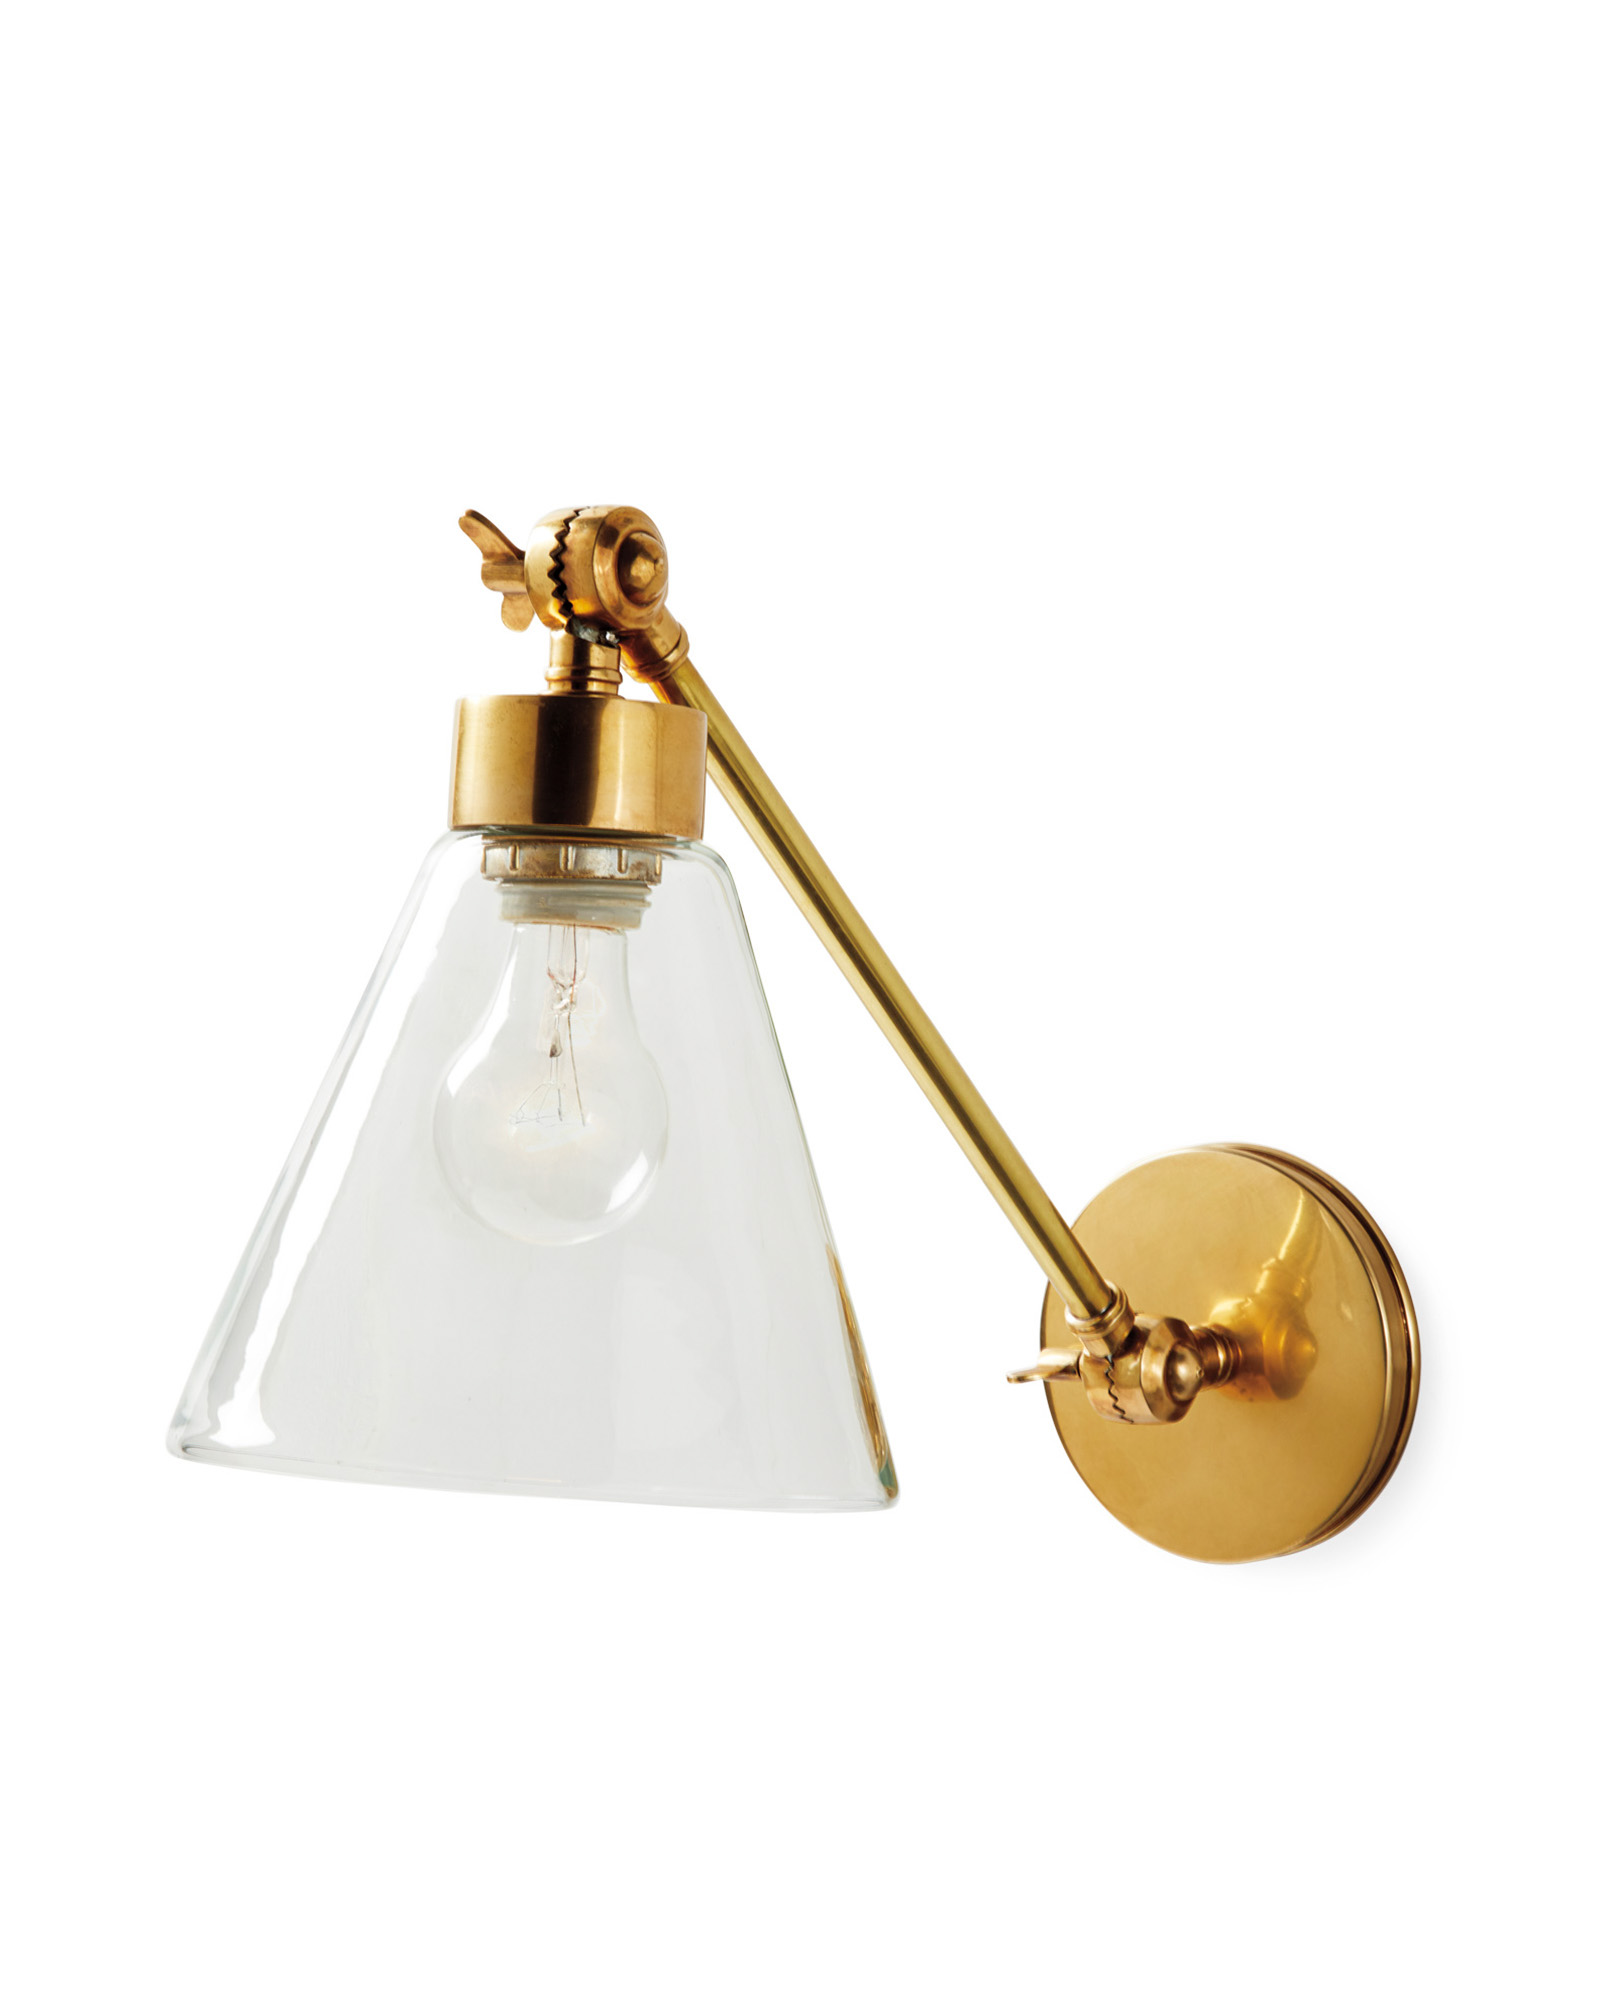 Sconce Lighting Fixture